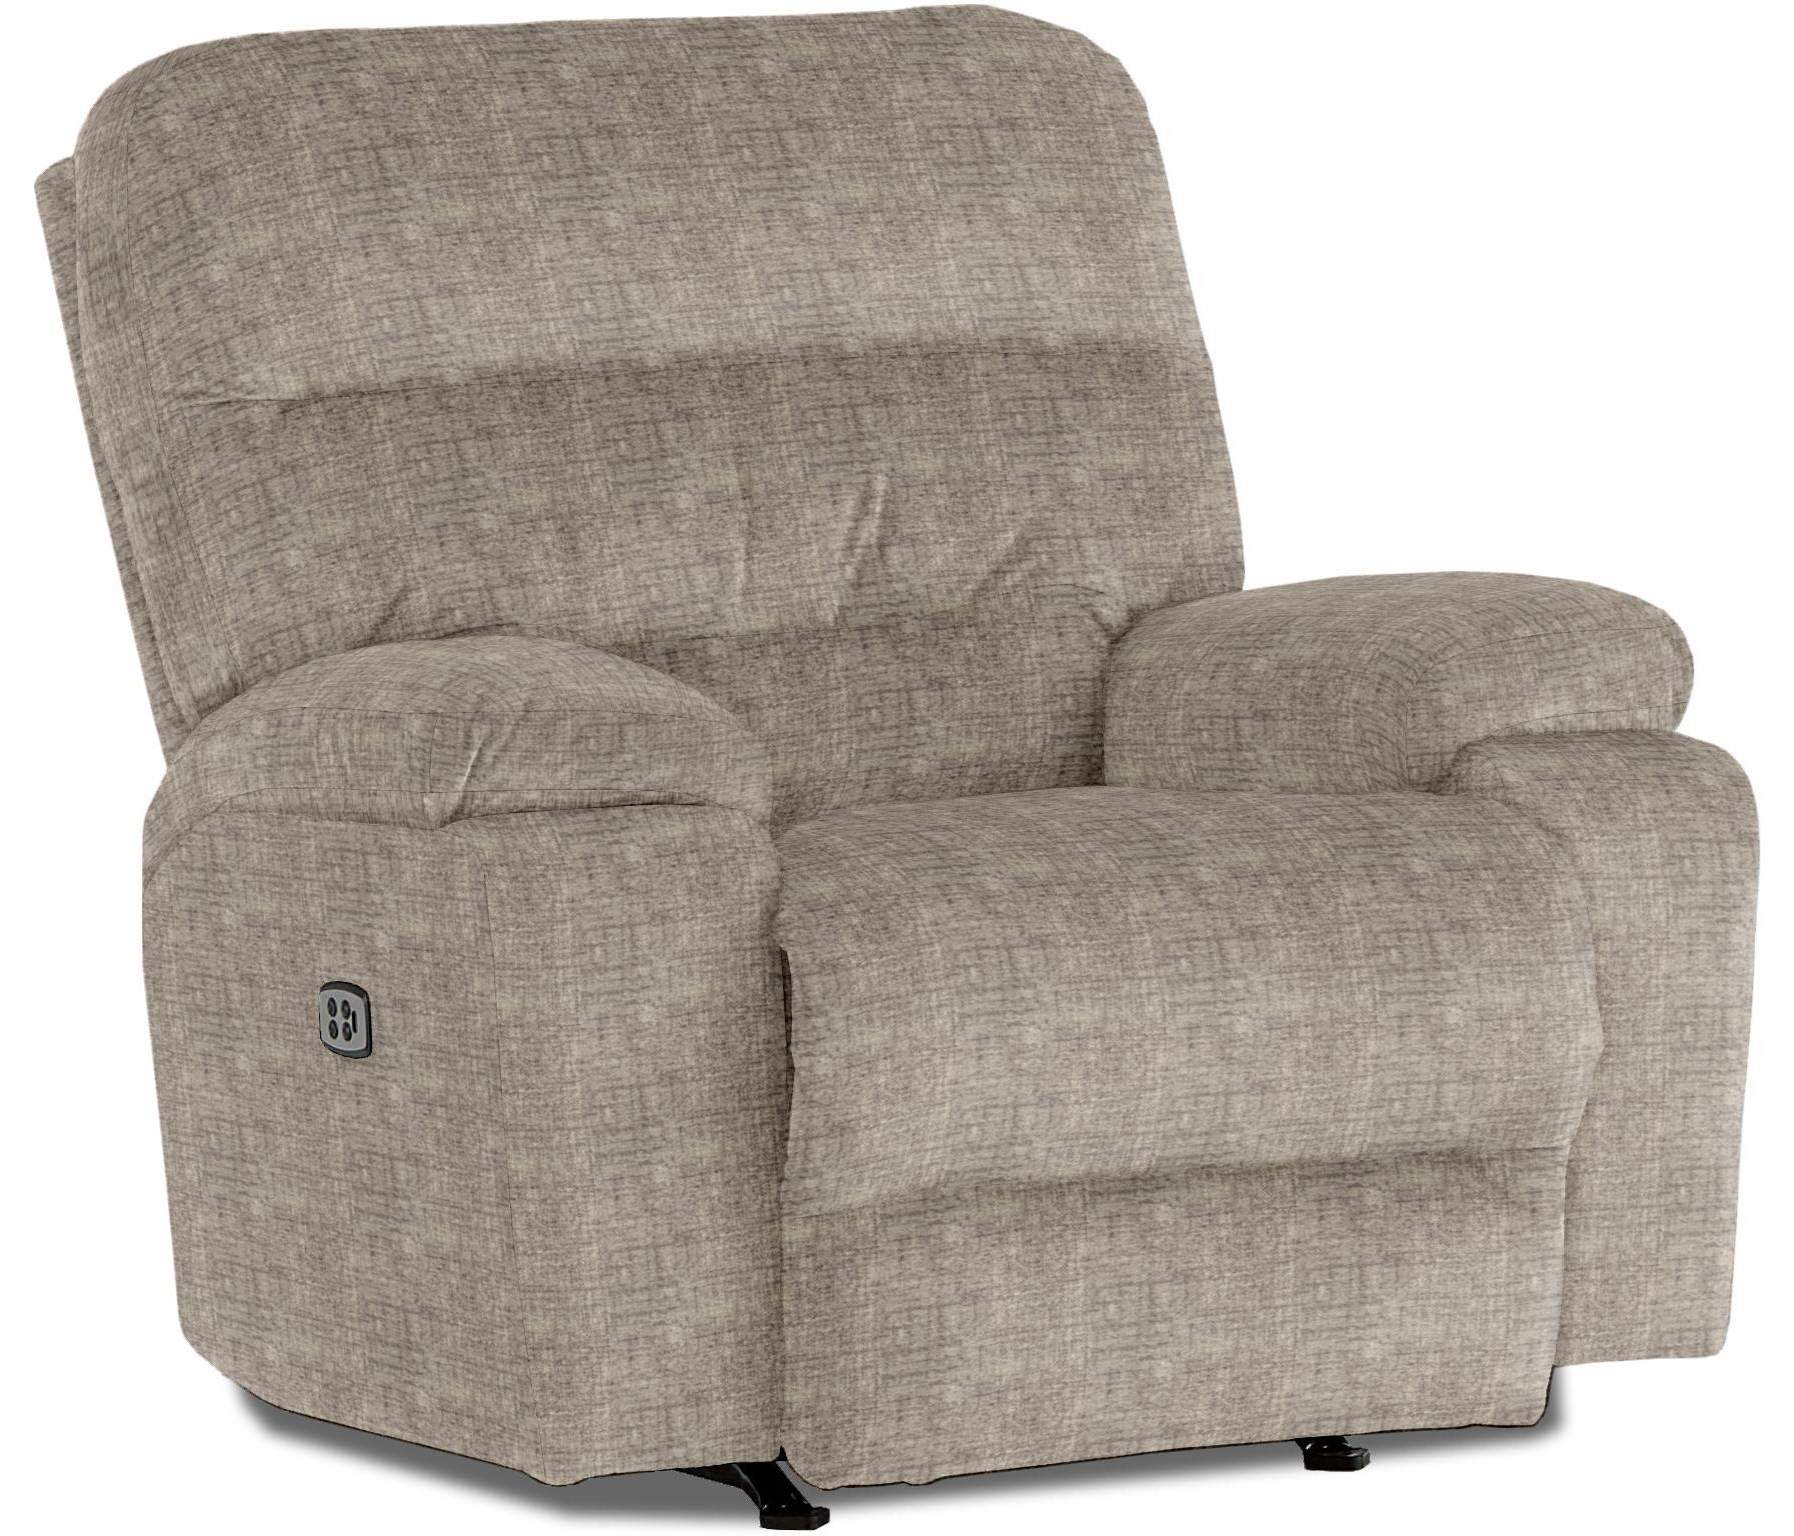 Milo Power Headrest Wallsaver Recliner by Best Home Furnishings at Crowley Furniture & Mattress